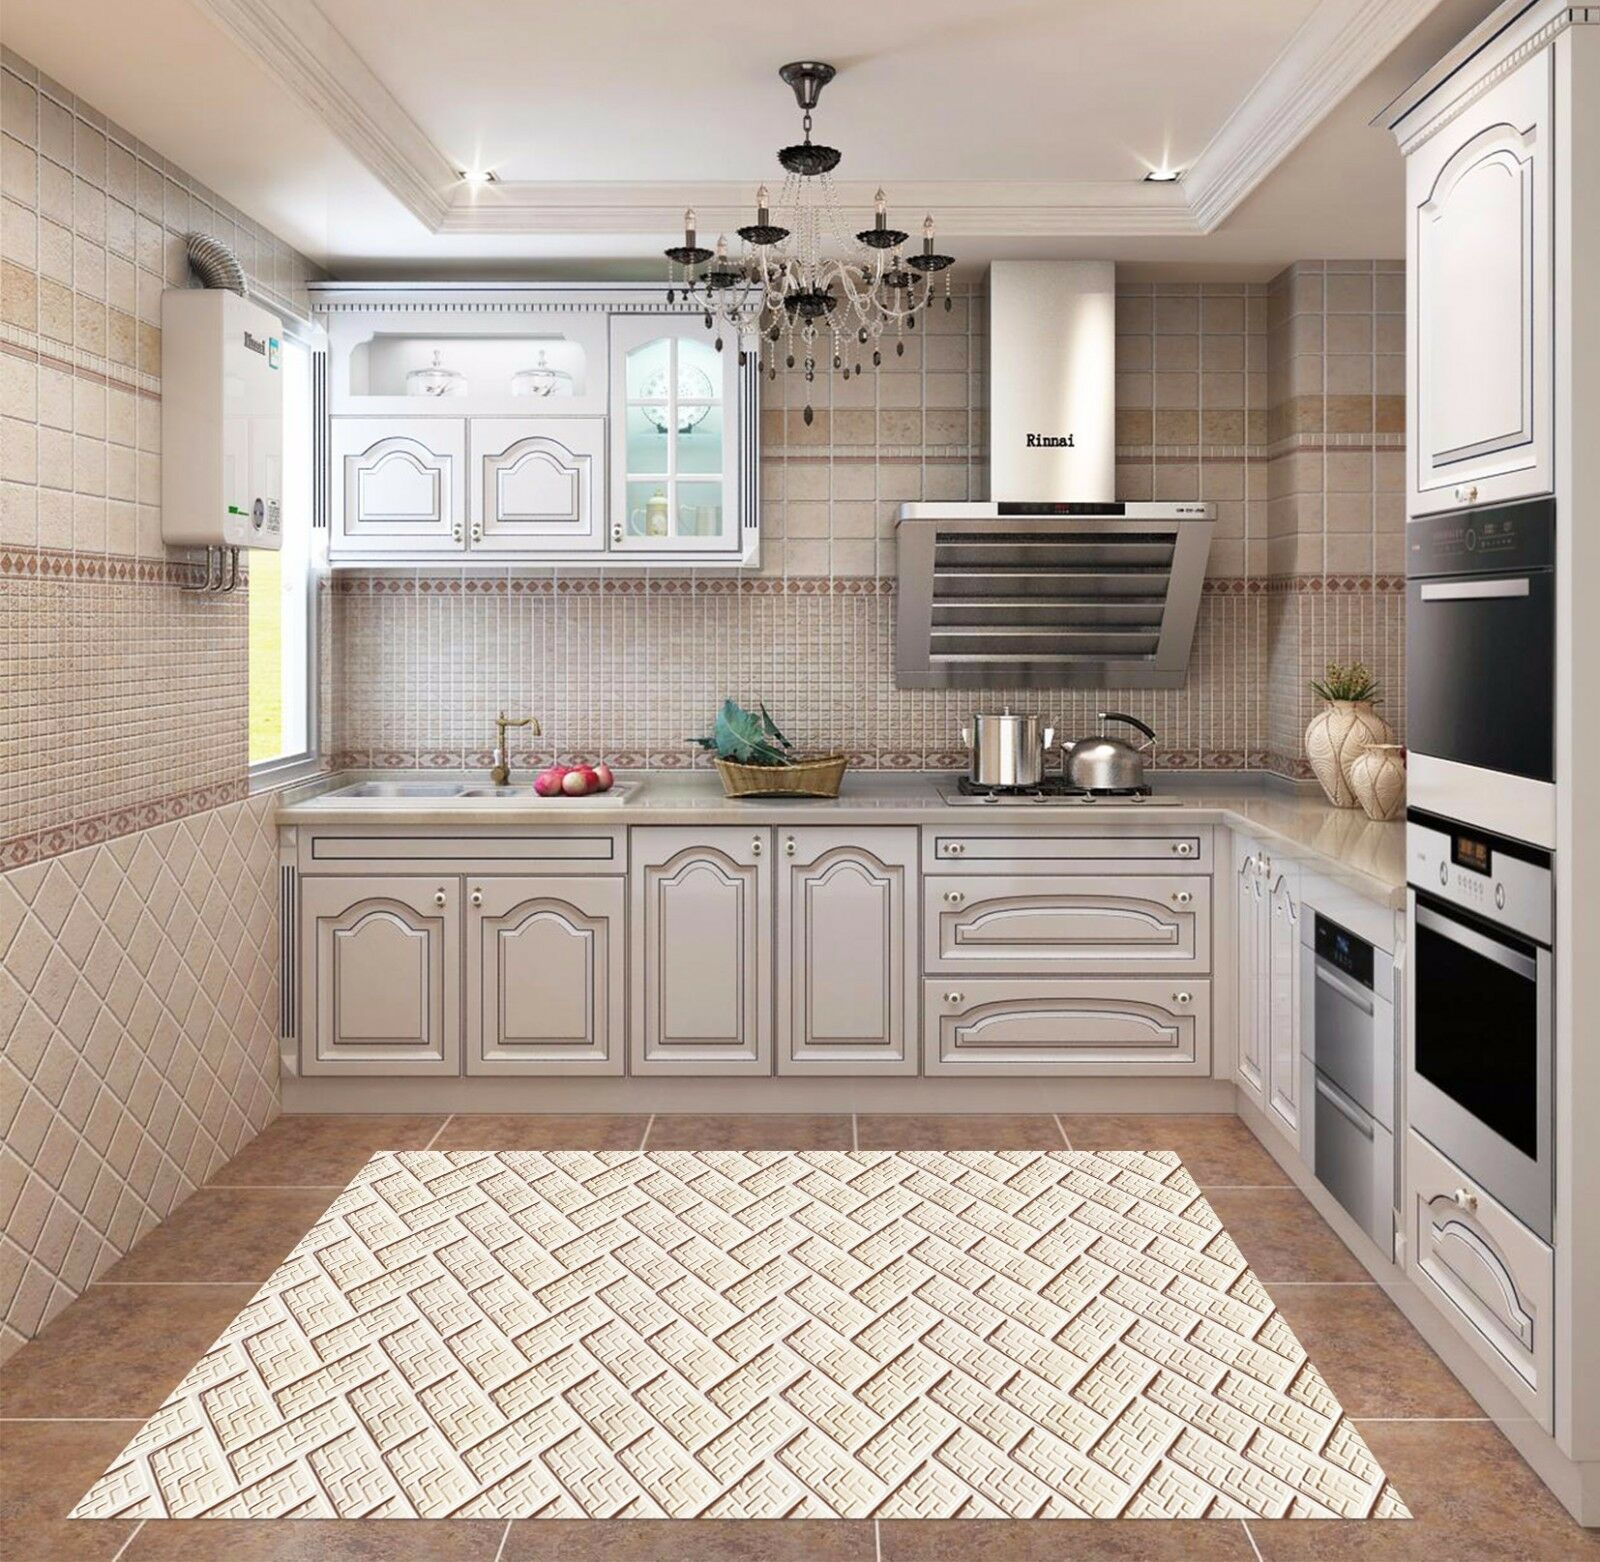 3D Pattern 838 Kitchen Mat Floor Murals Wall Print Wall AJ WALLPAPER AU Kyra